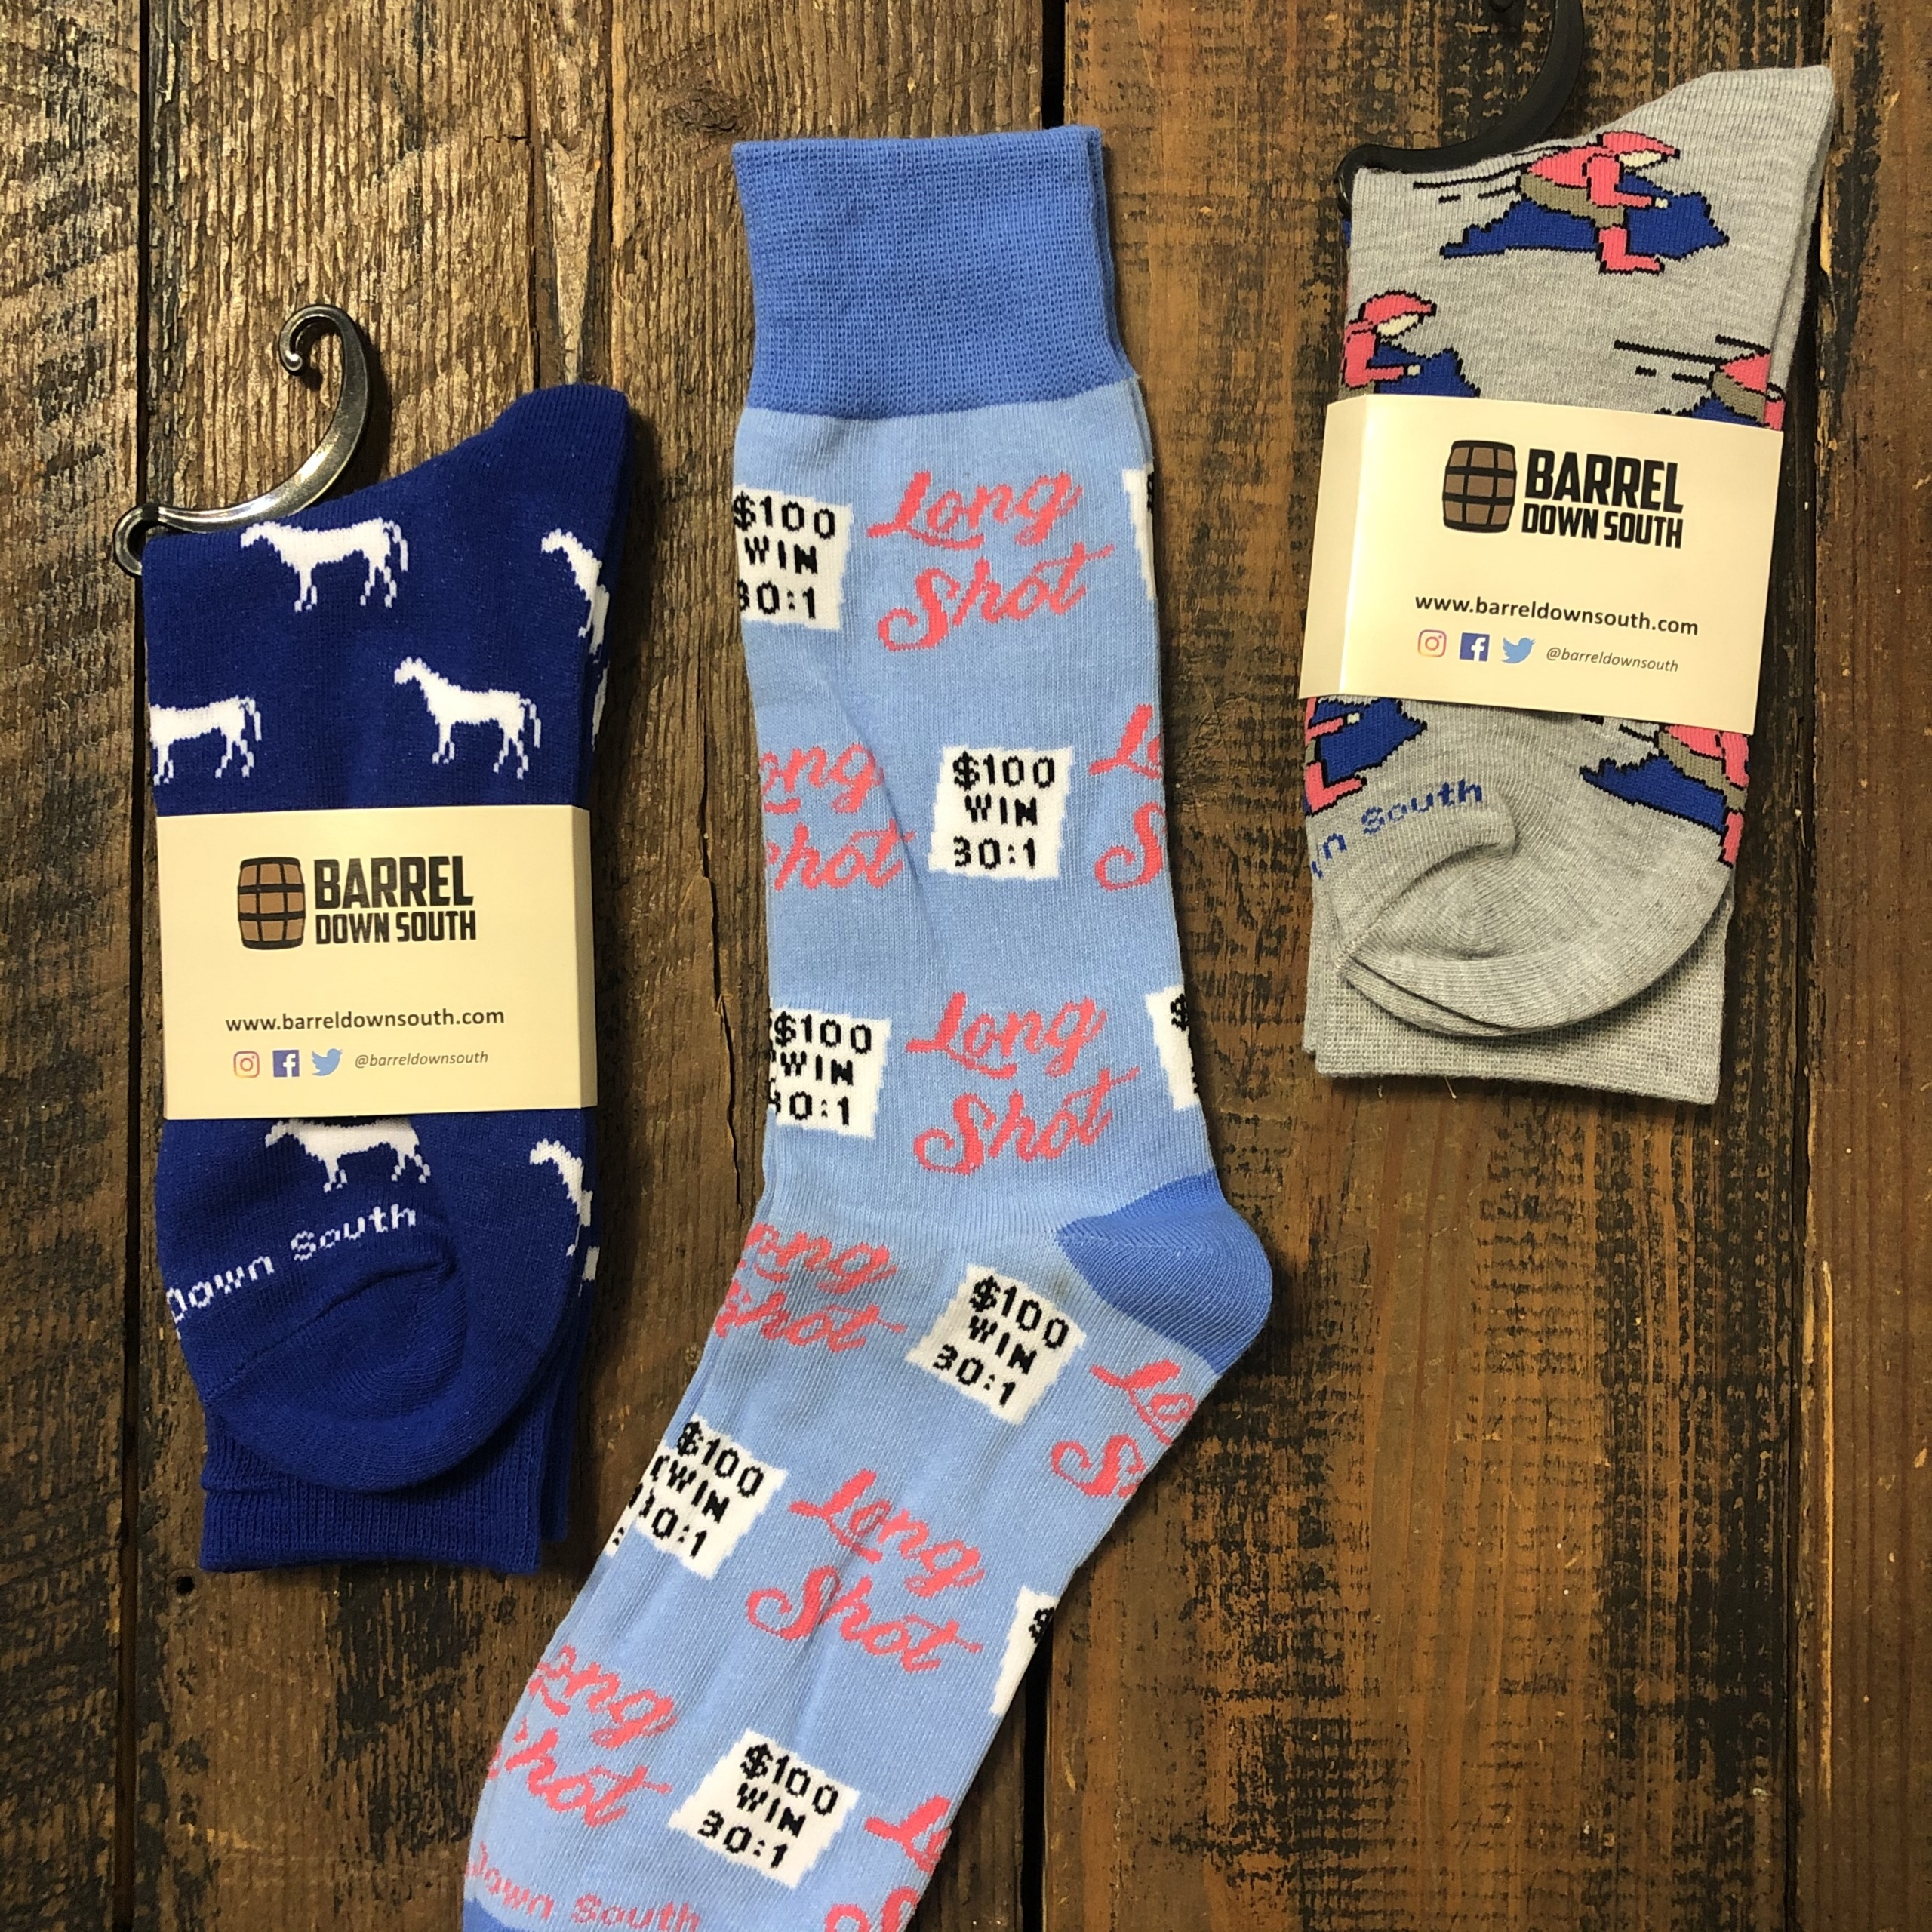 Barrel Down South Derby Day Socks